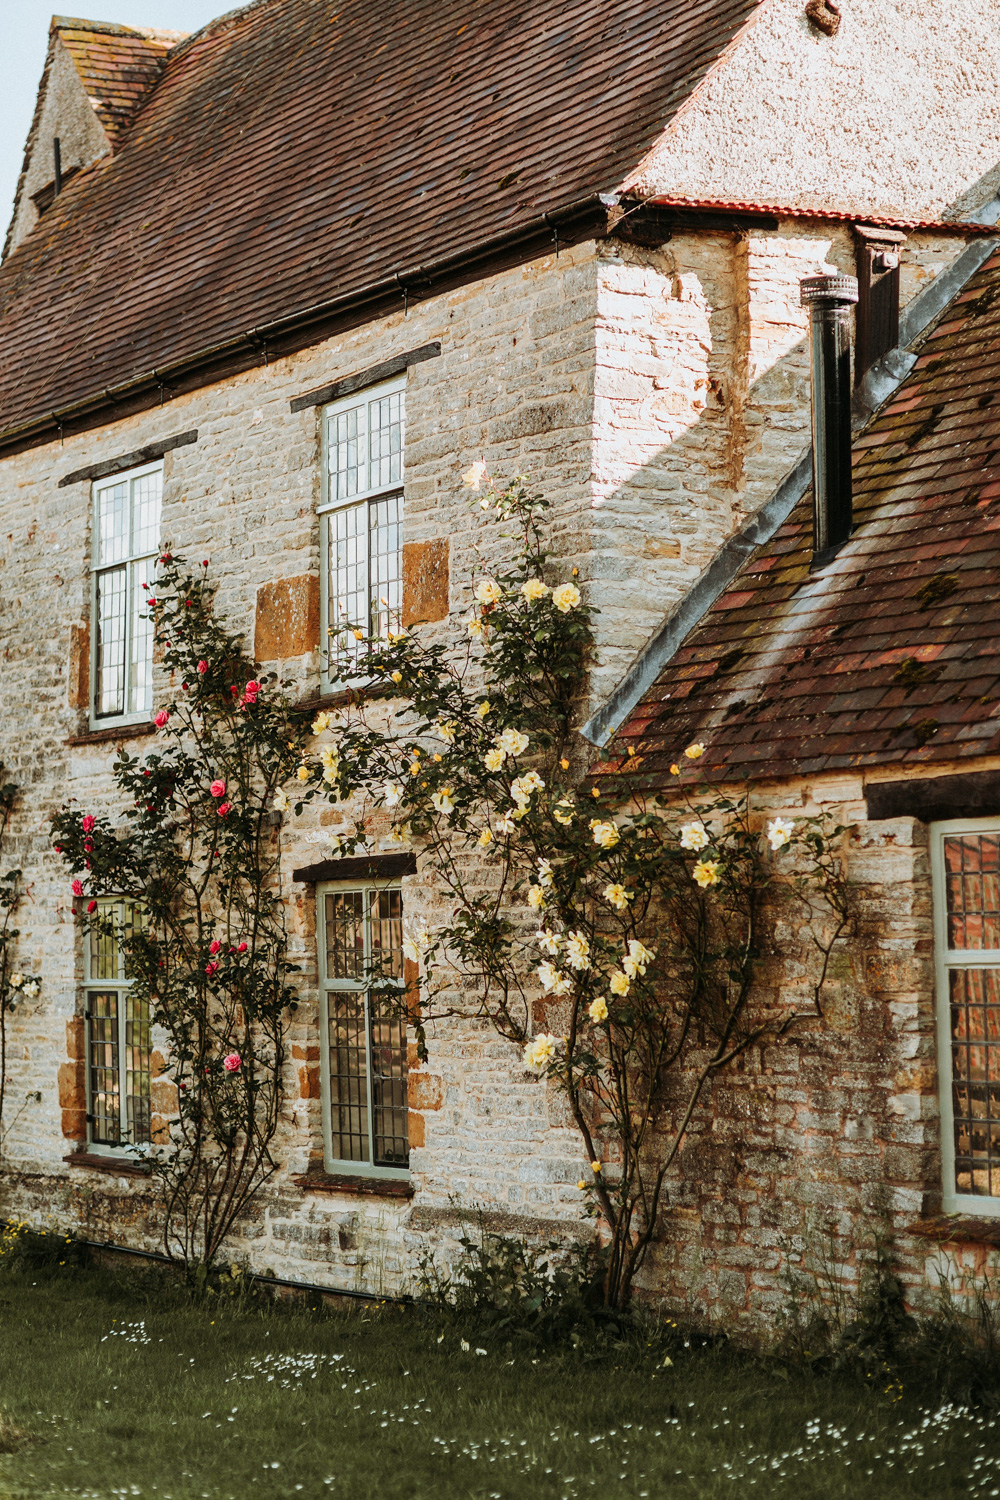 stone house with roses by the large windows in the Cotswolds countryside